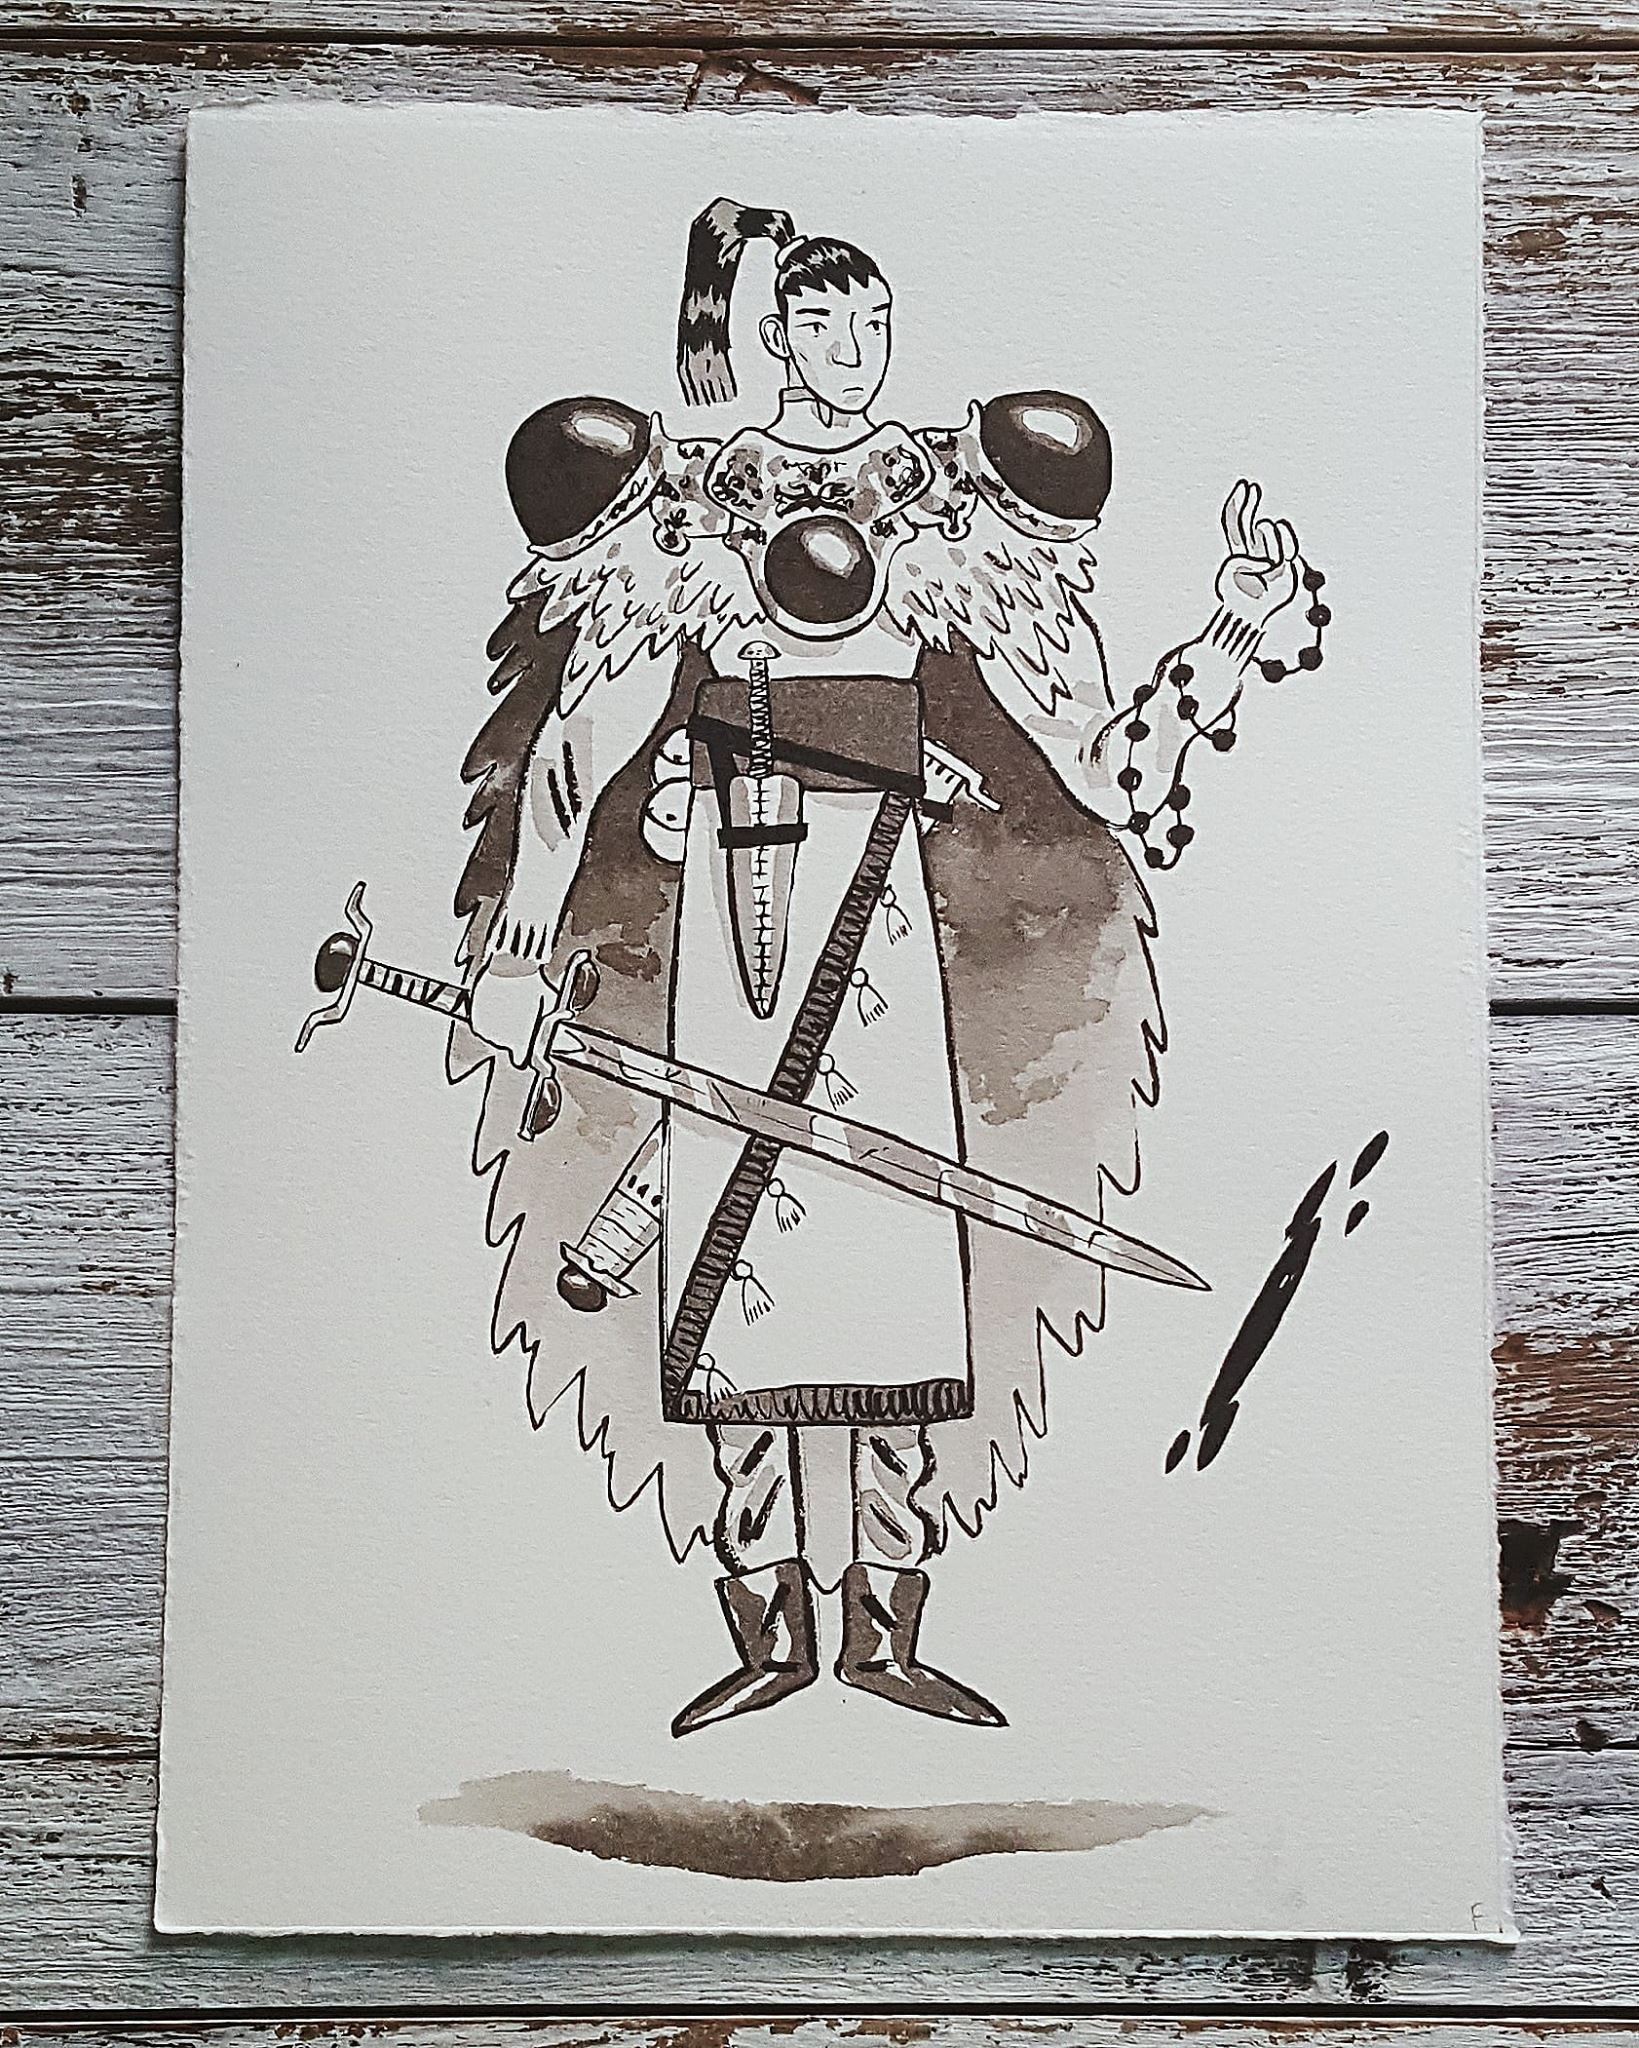 A Knight a Day No. 24, Swordsman of the Pale - The Pale is a wispy, shadowy dimension that weaves in and out of the physical world. This swordsman trained for many years to be able to open portals to the Pale. When he steps into it, he can observe the goings of the physical world without being seen. He uses his abilities to operate as an assassin and political informant.